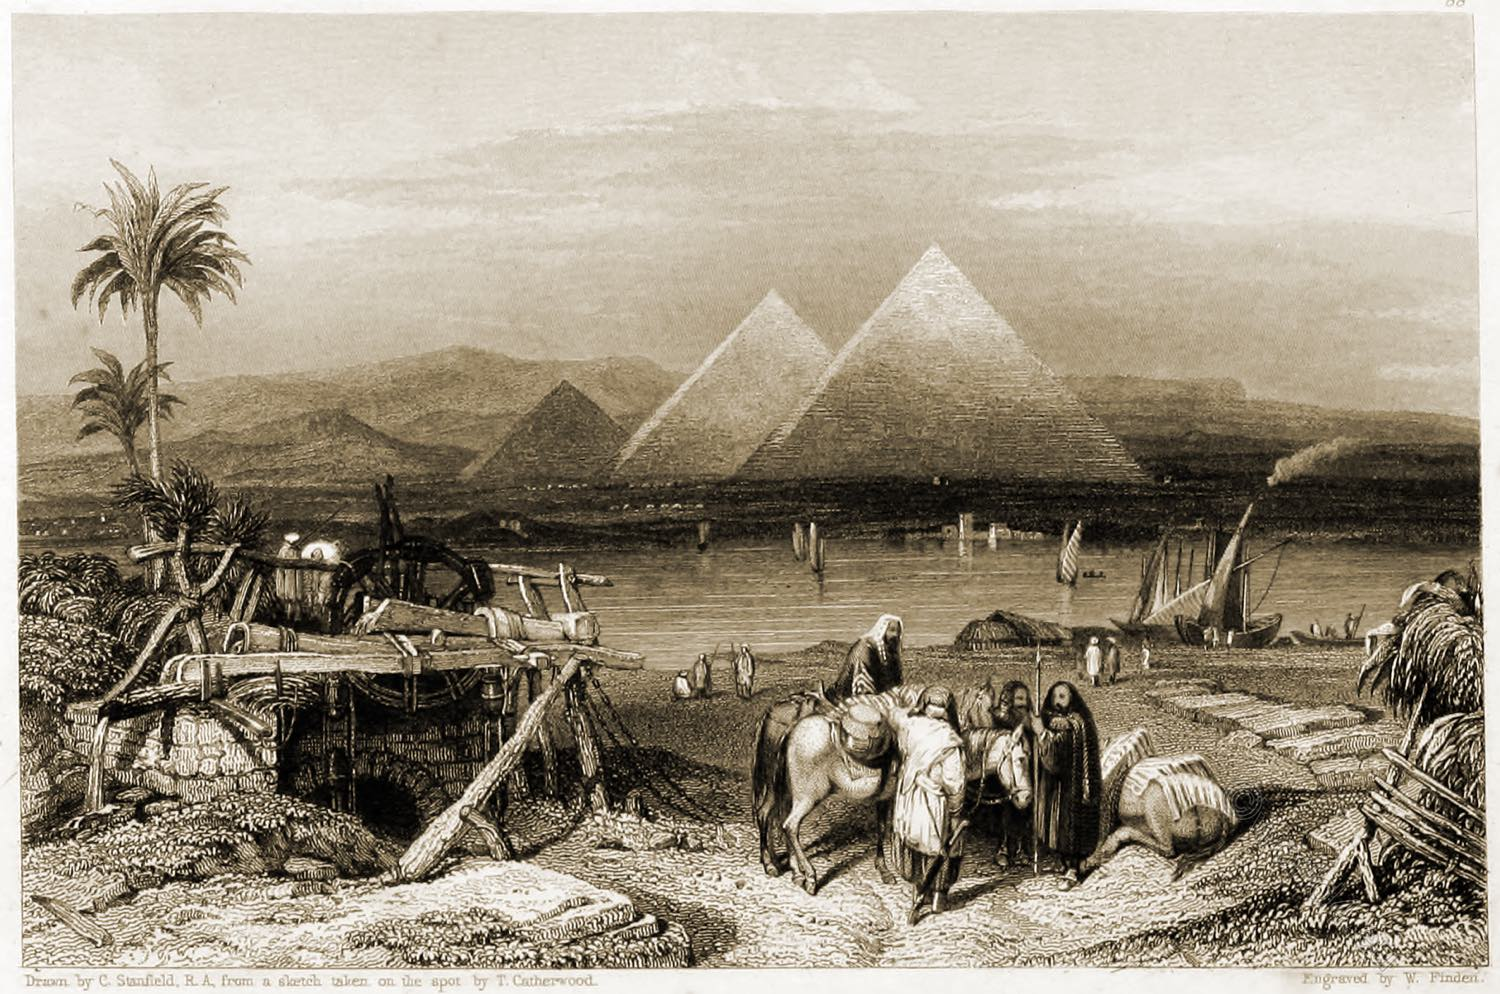 Egypt, Nile, Pyramids, Ghizeh, Landscape, Illustrations, Bible, W. Finden, Harding,